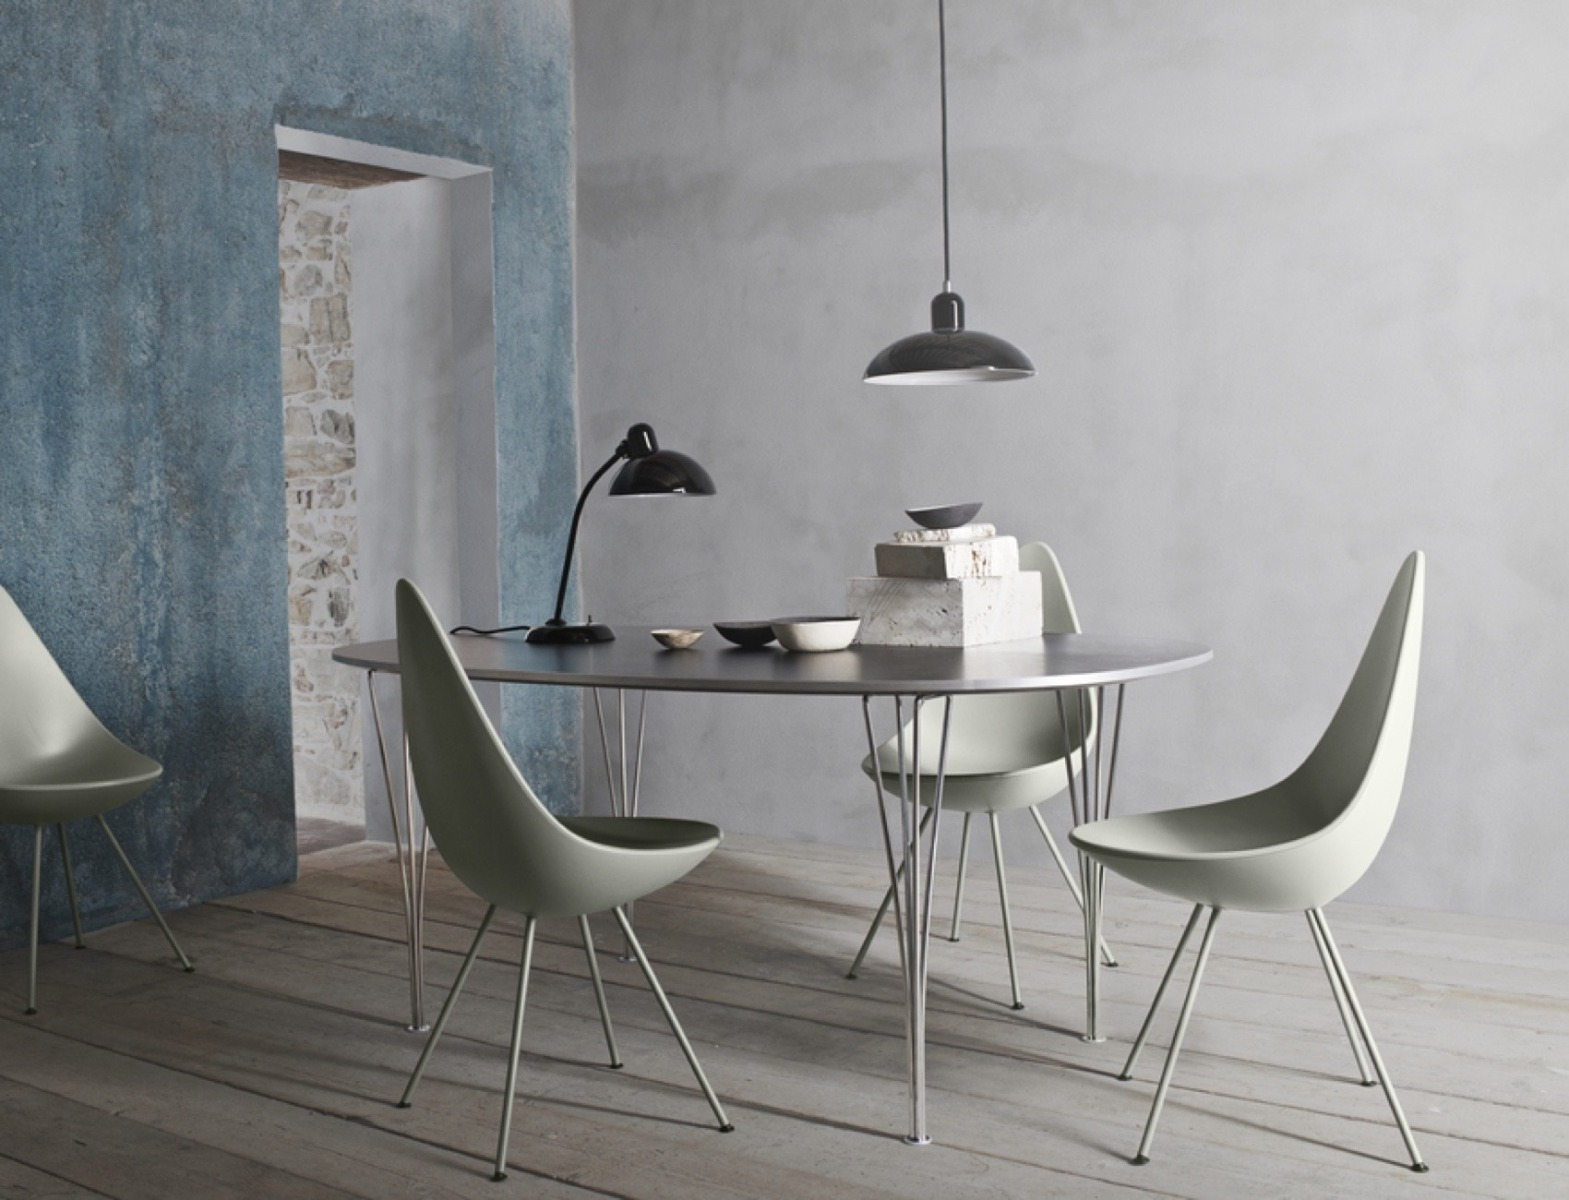 Fritz Hansen Drop Chairs with the super elliptical table